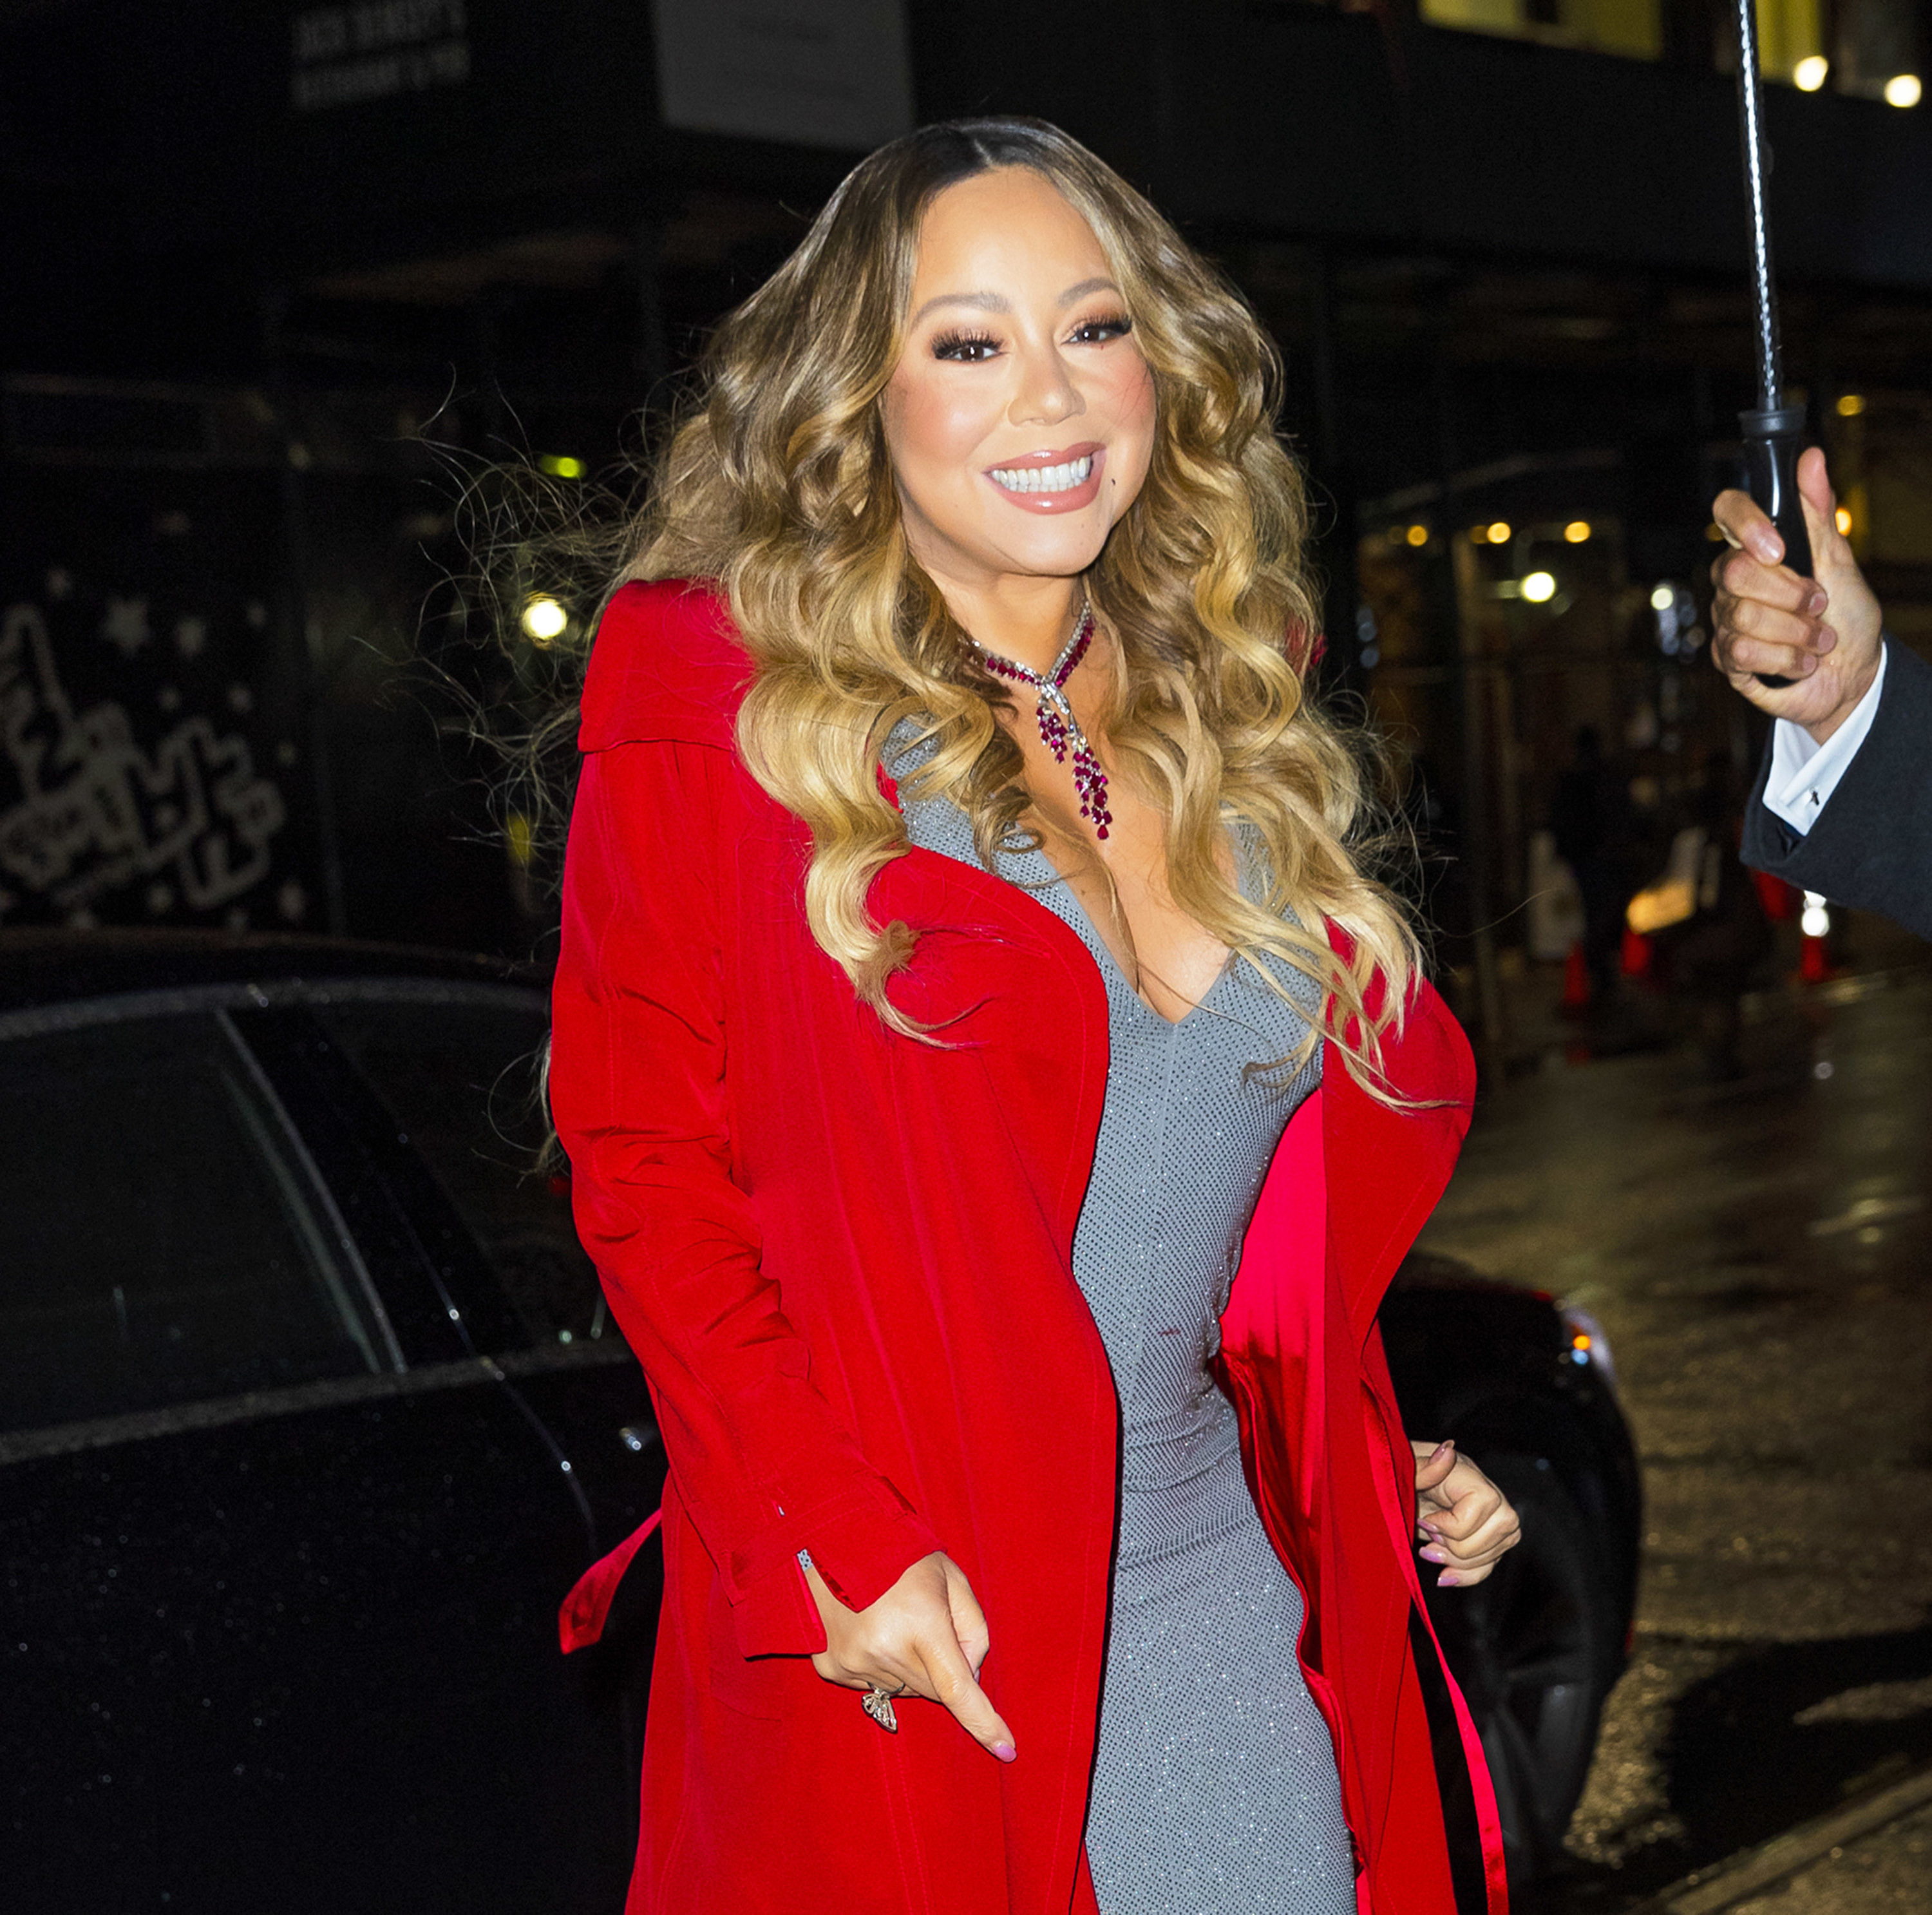 Mariah Carey arrives at Empire State Building on December 17, 2019 in New York City